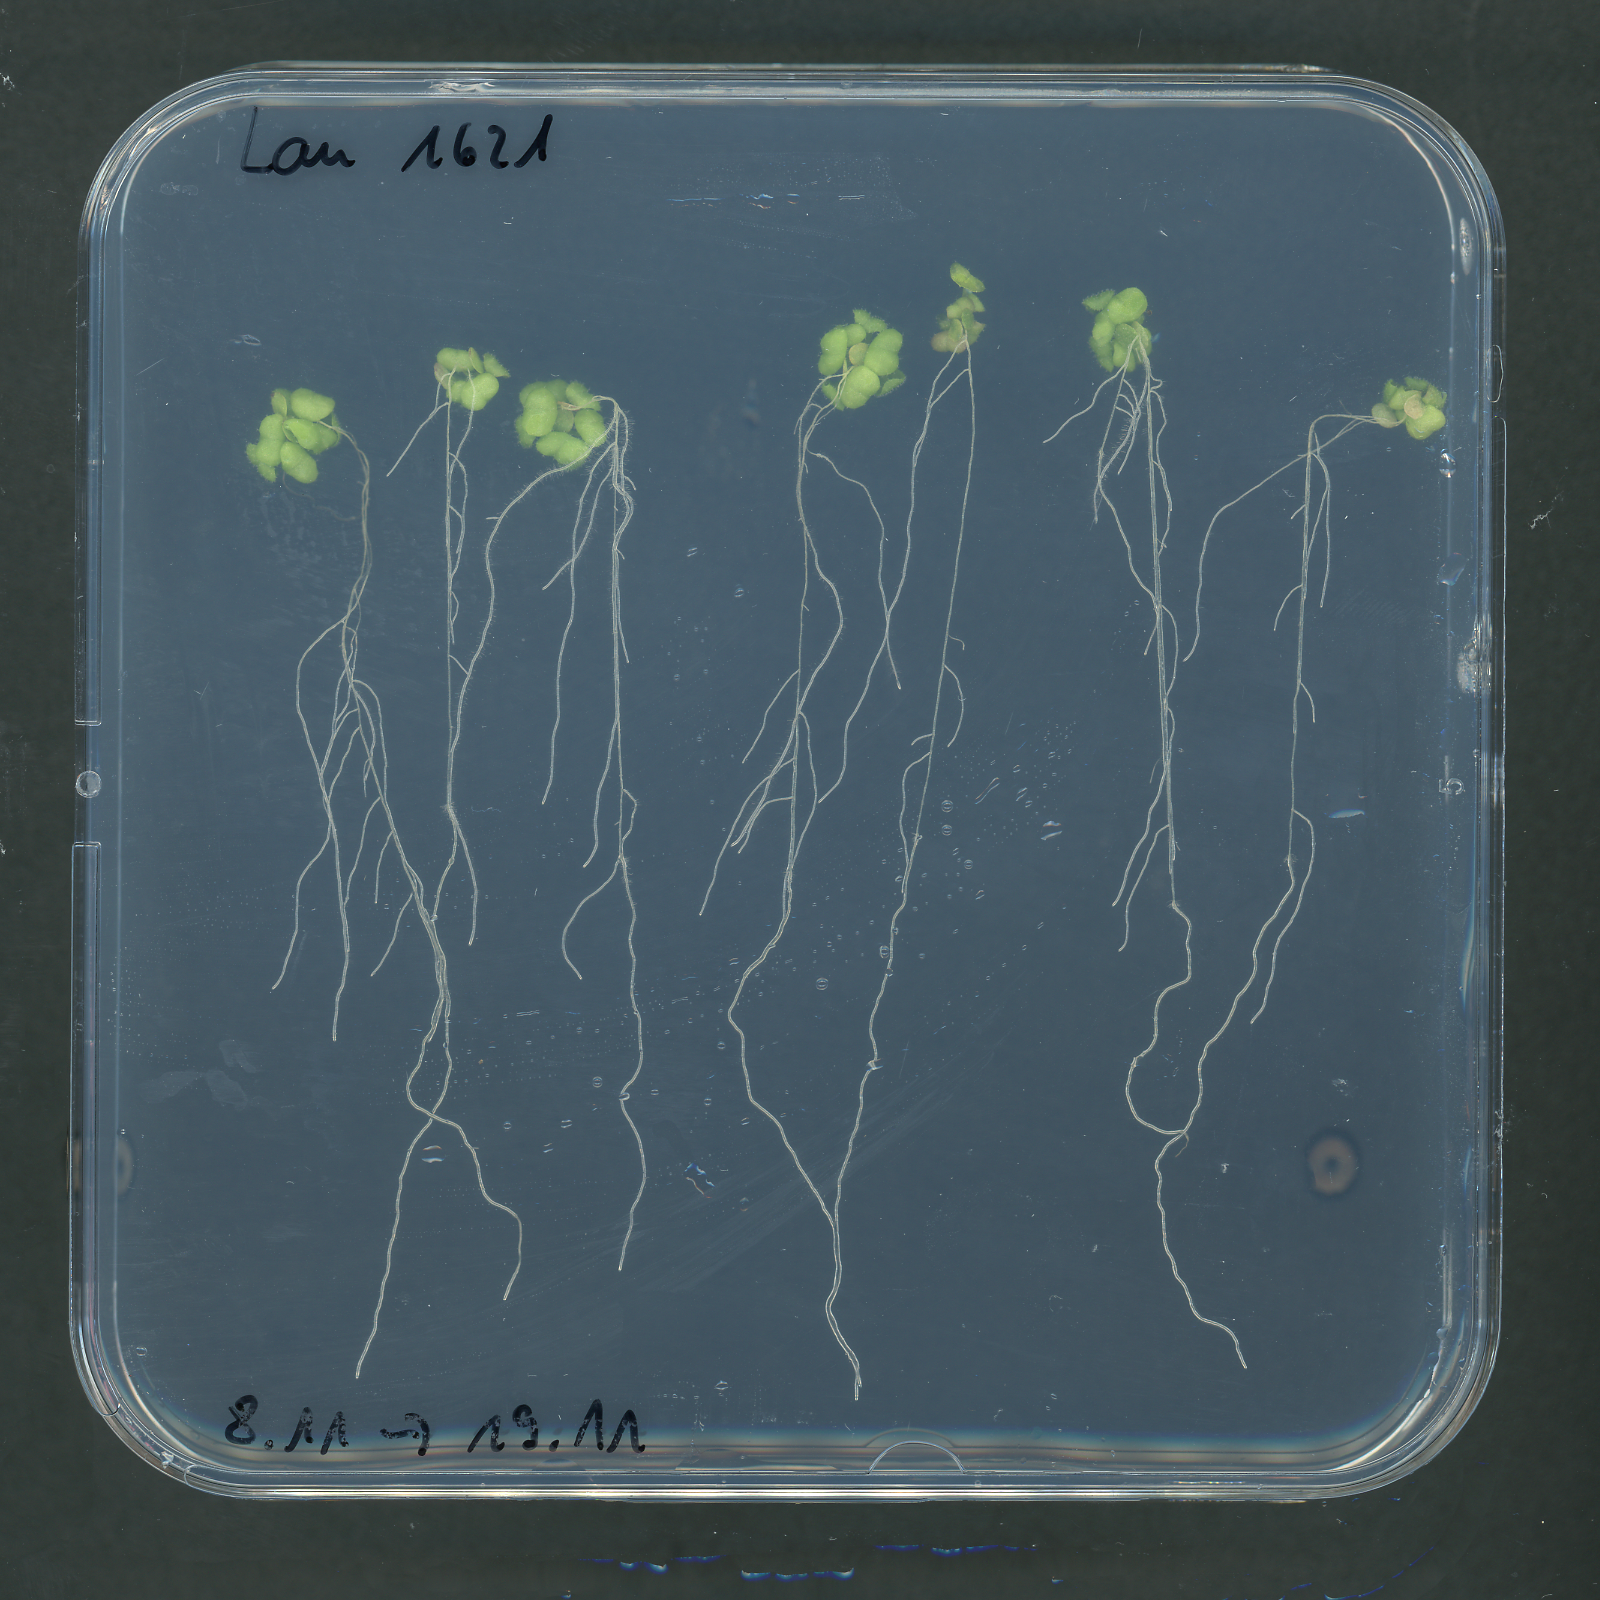 Seedlings on Agar Imaging